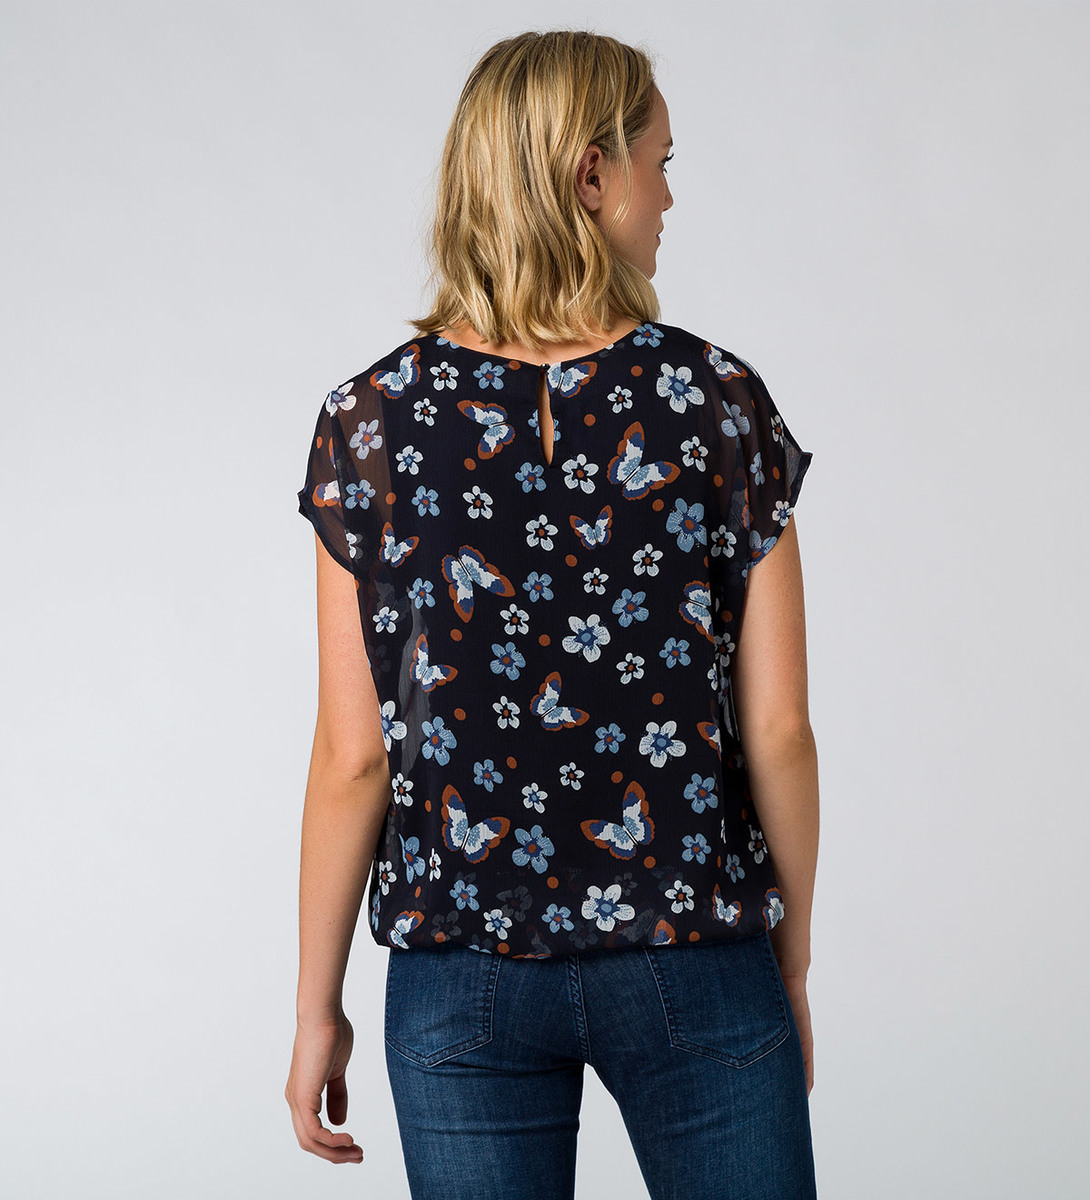 Bluse mit Alloverprint in blue black